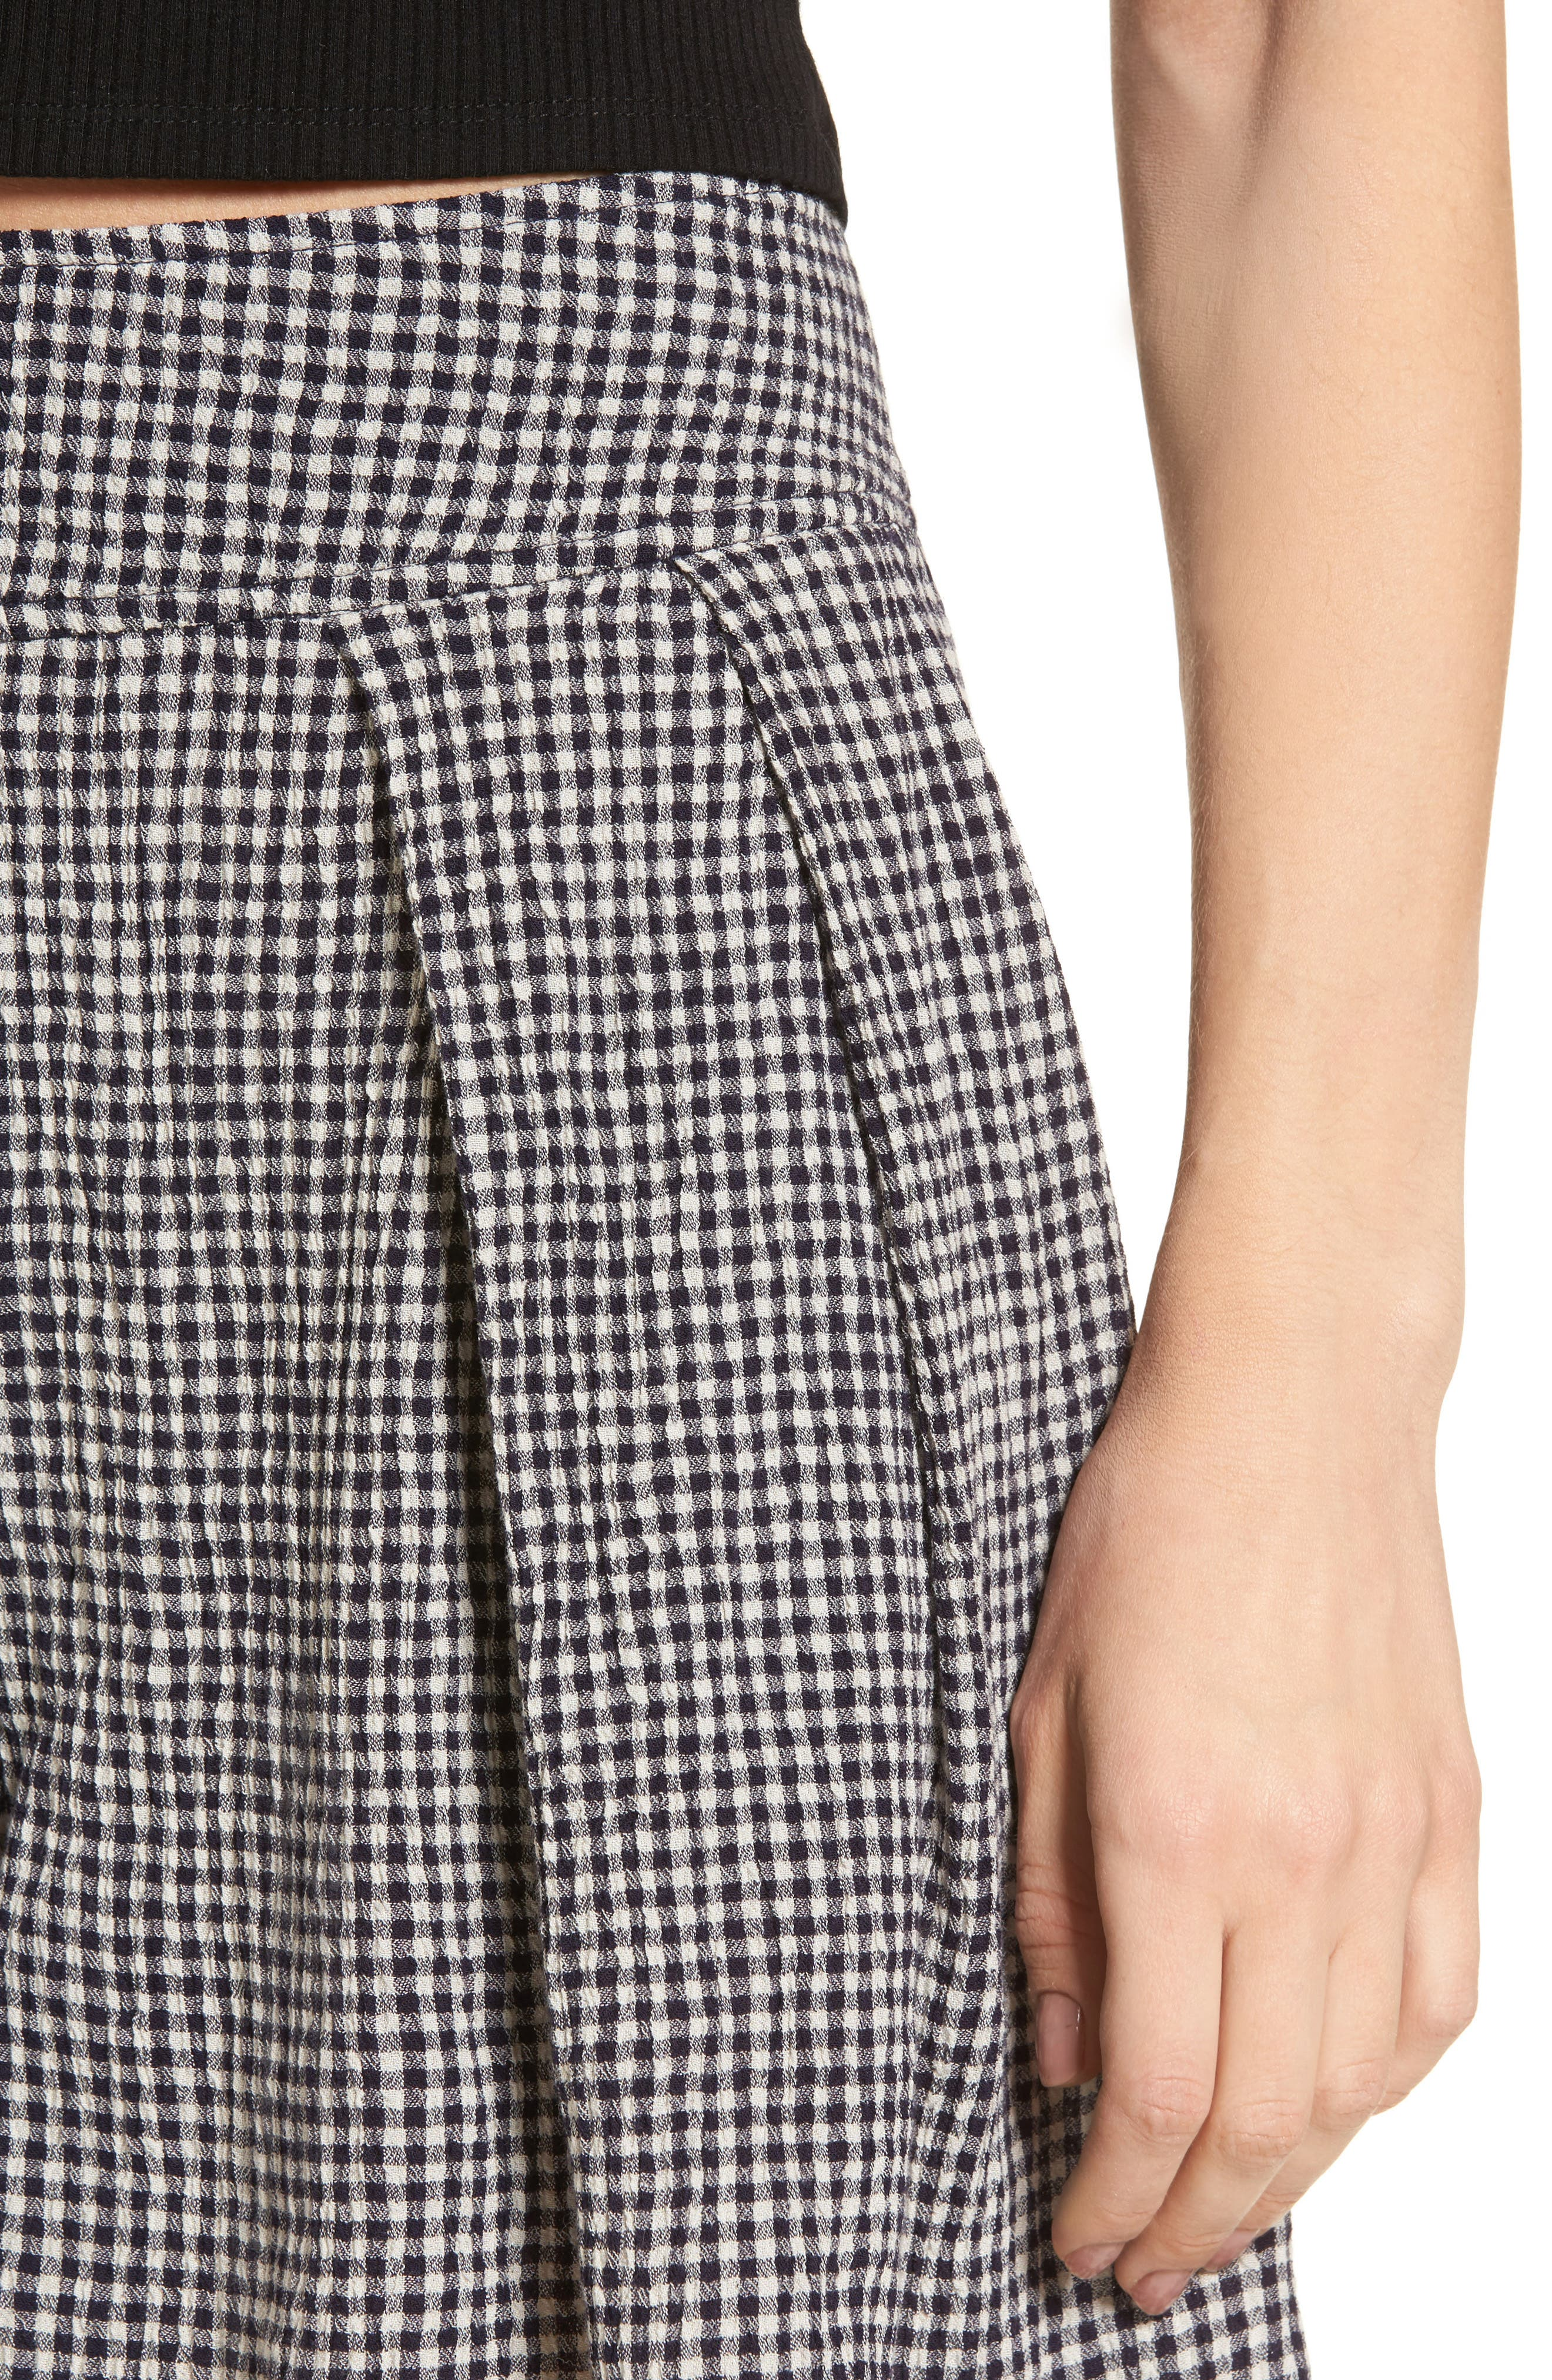 Pleated Gingham Shorts,                             Alternate thumbnail 4, color,                             001